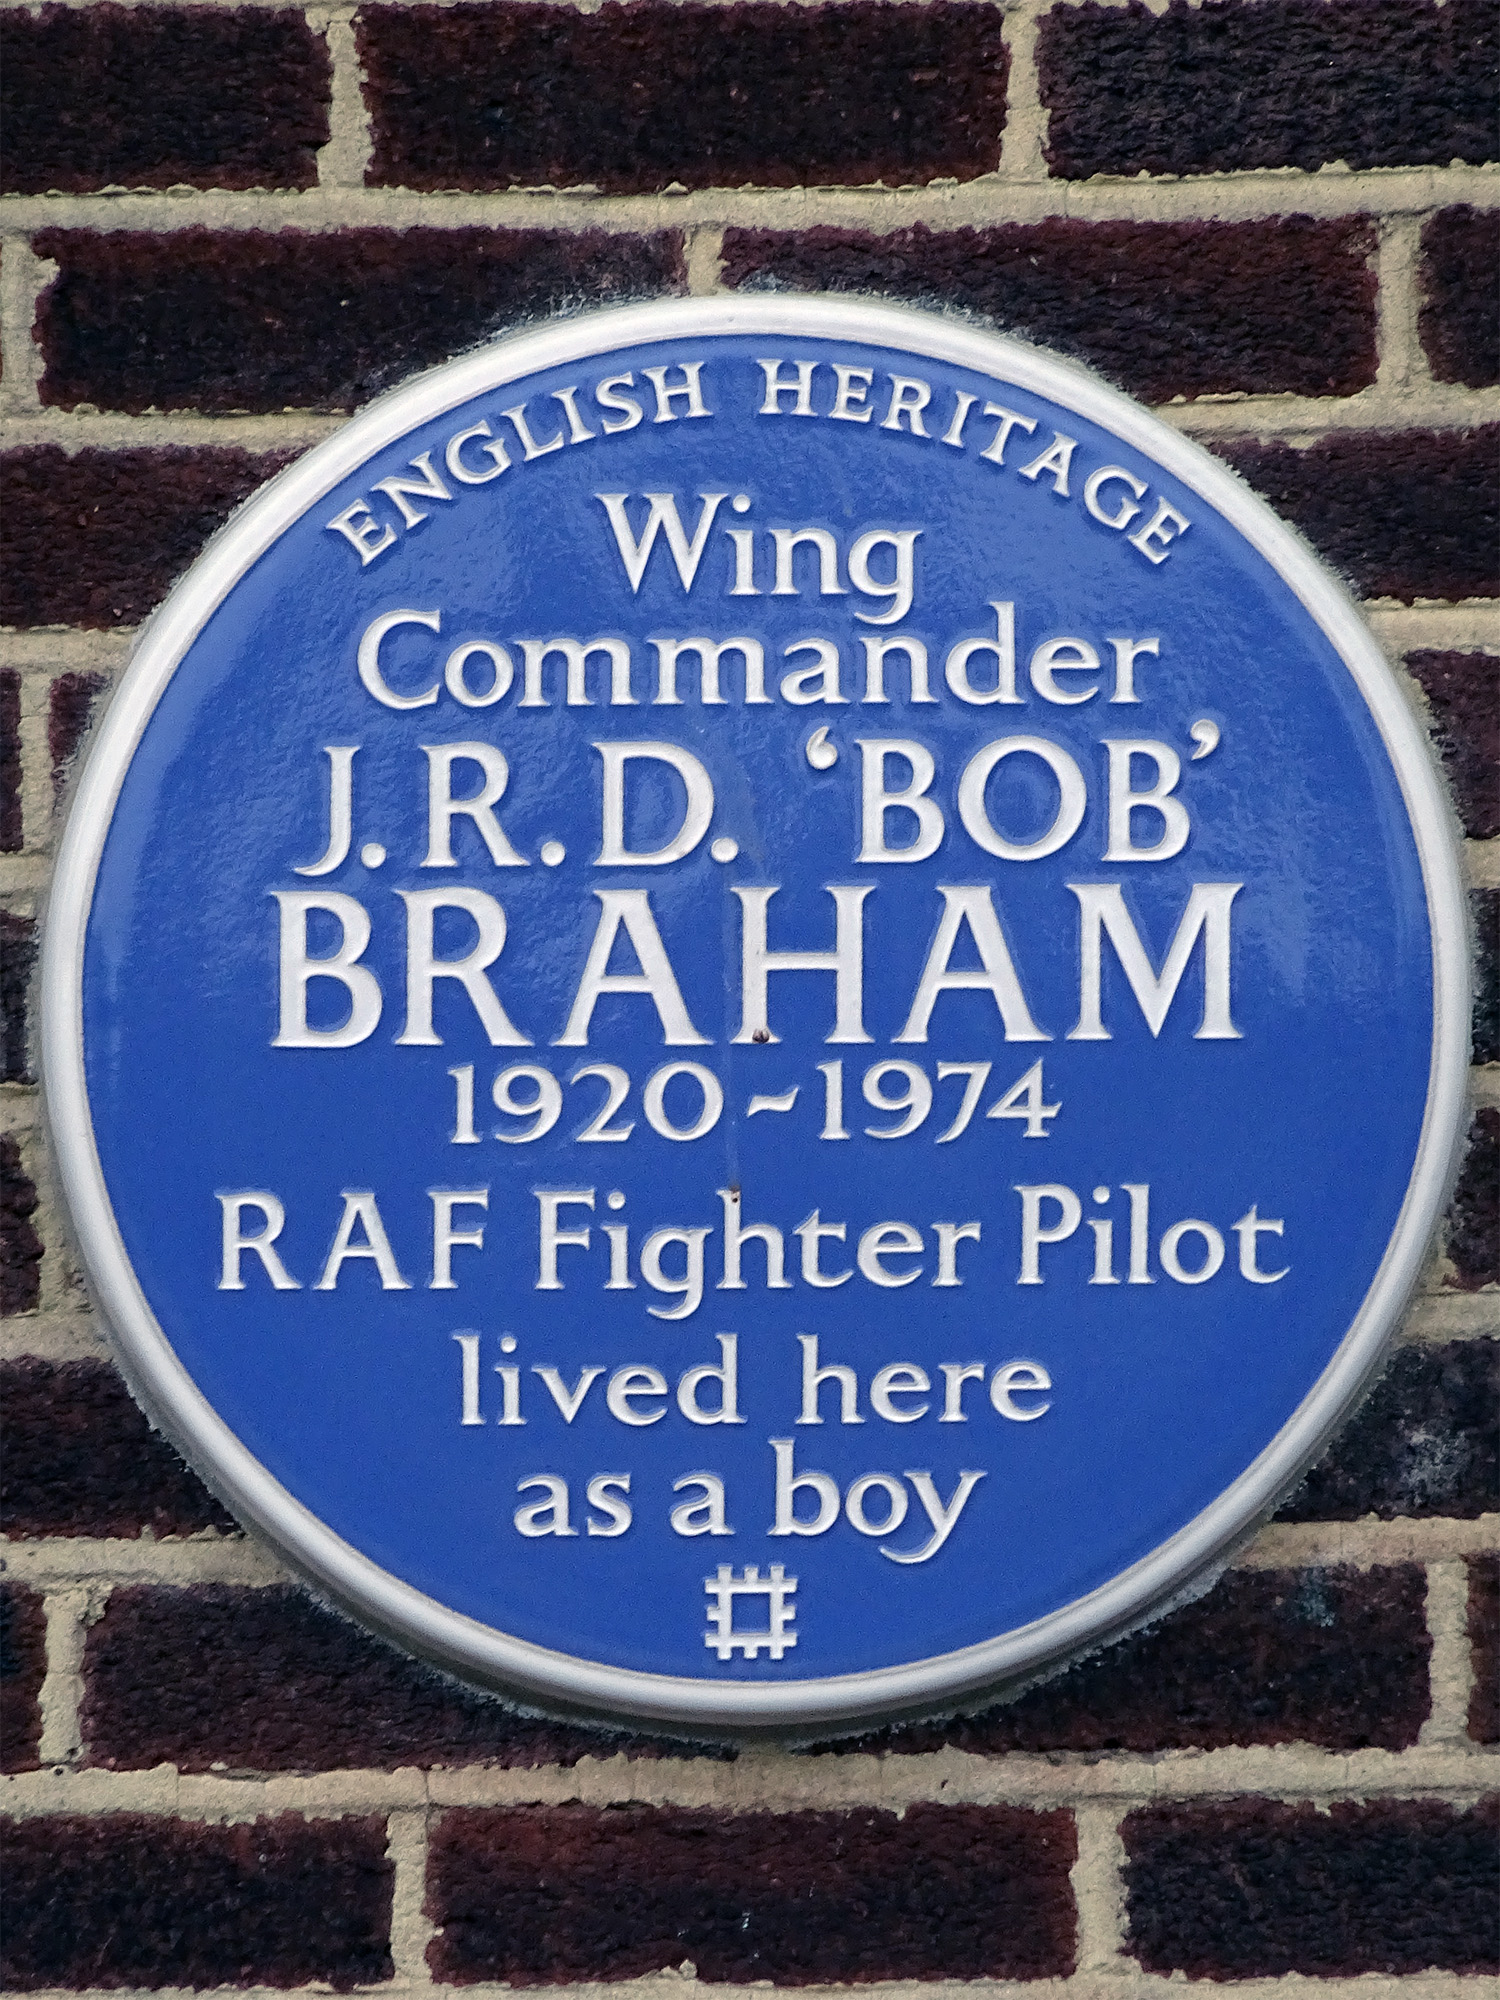 List Of English Heritage Blue Plaques In London Wikipedia